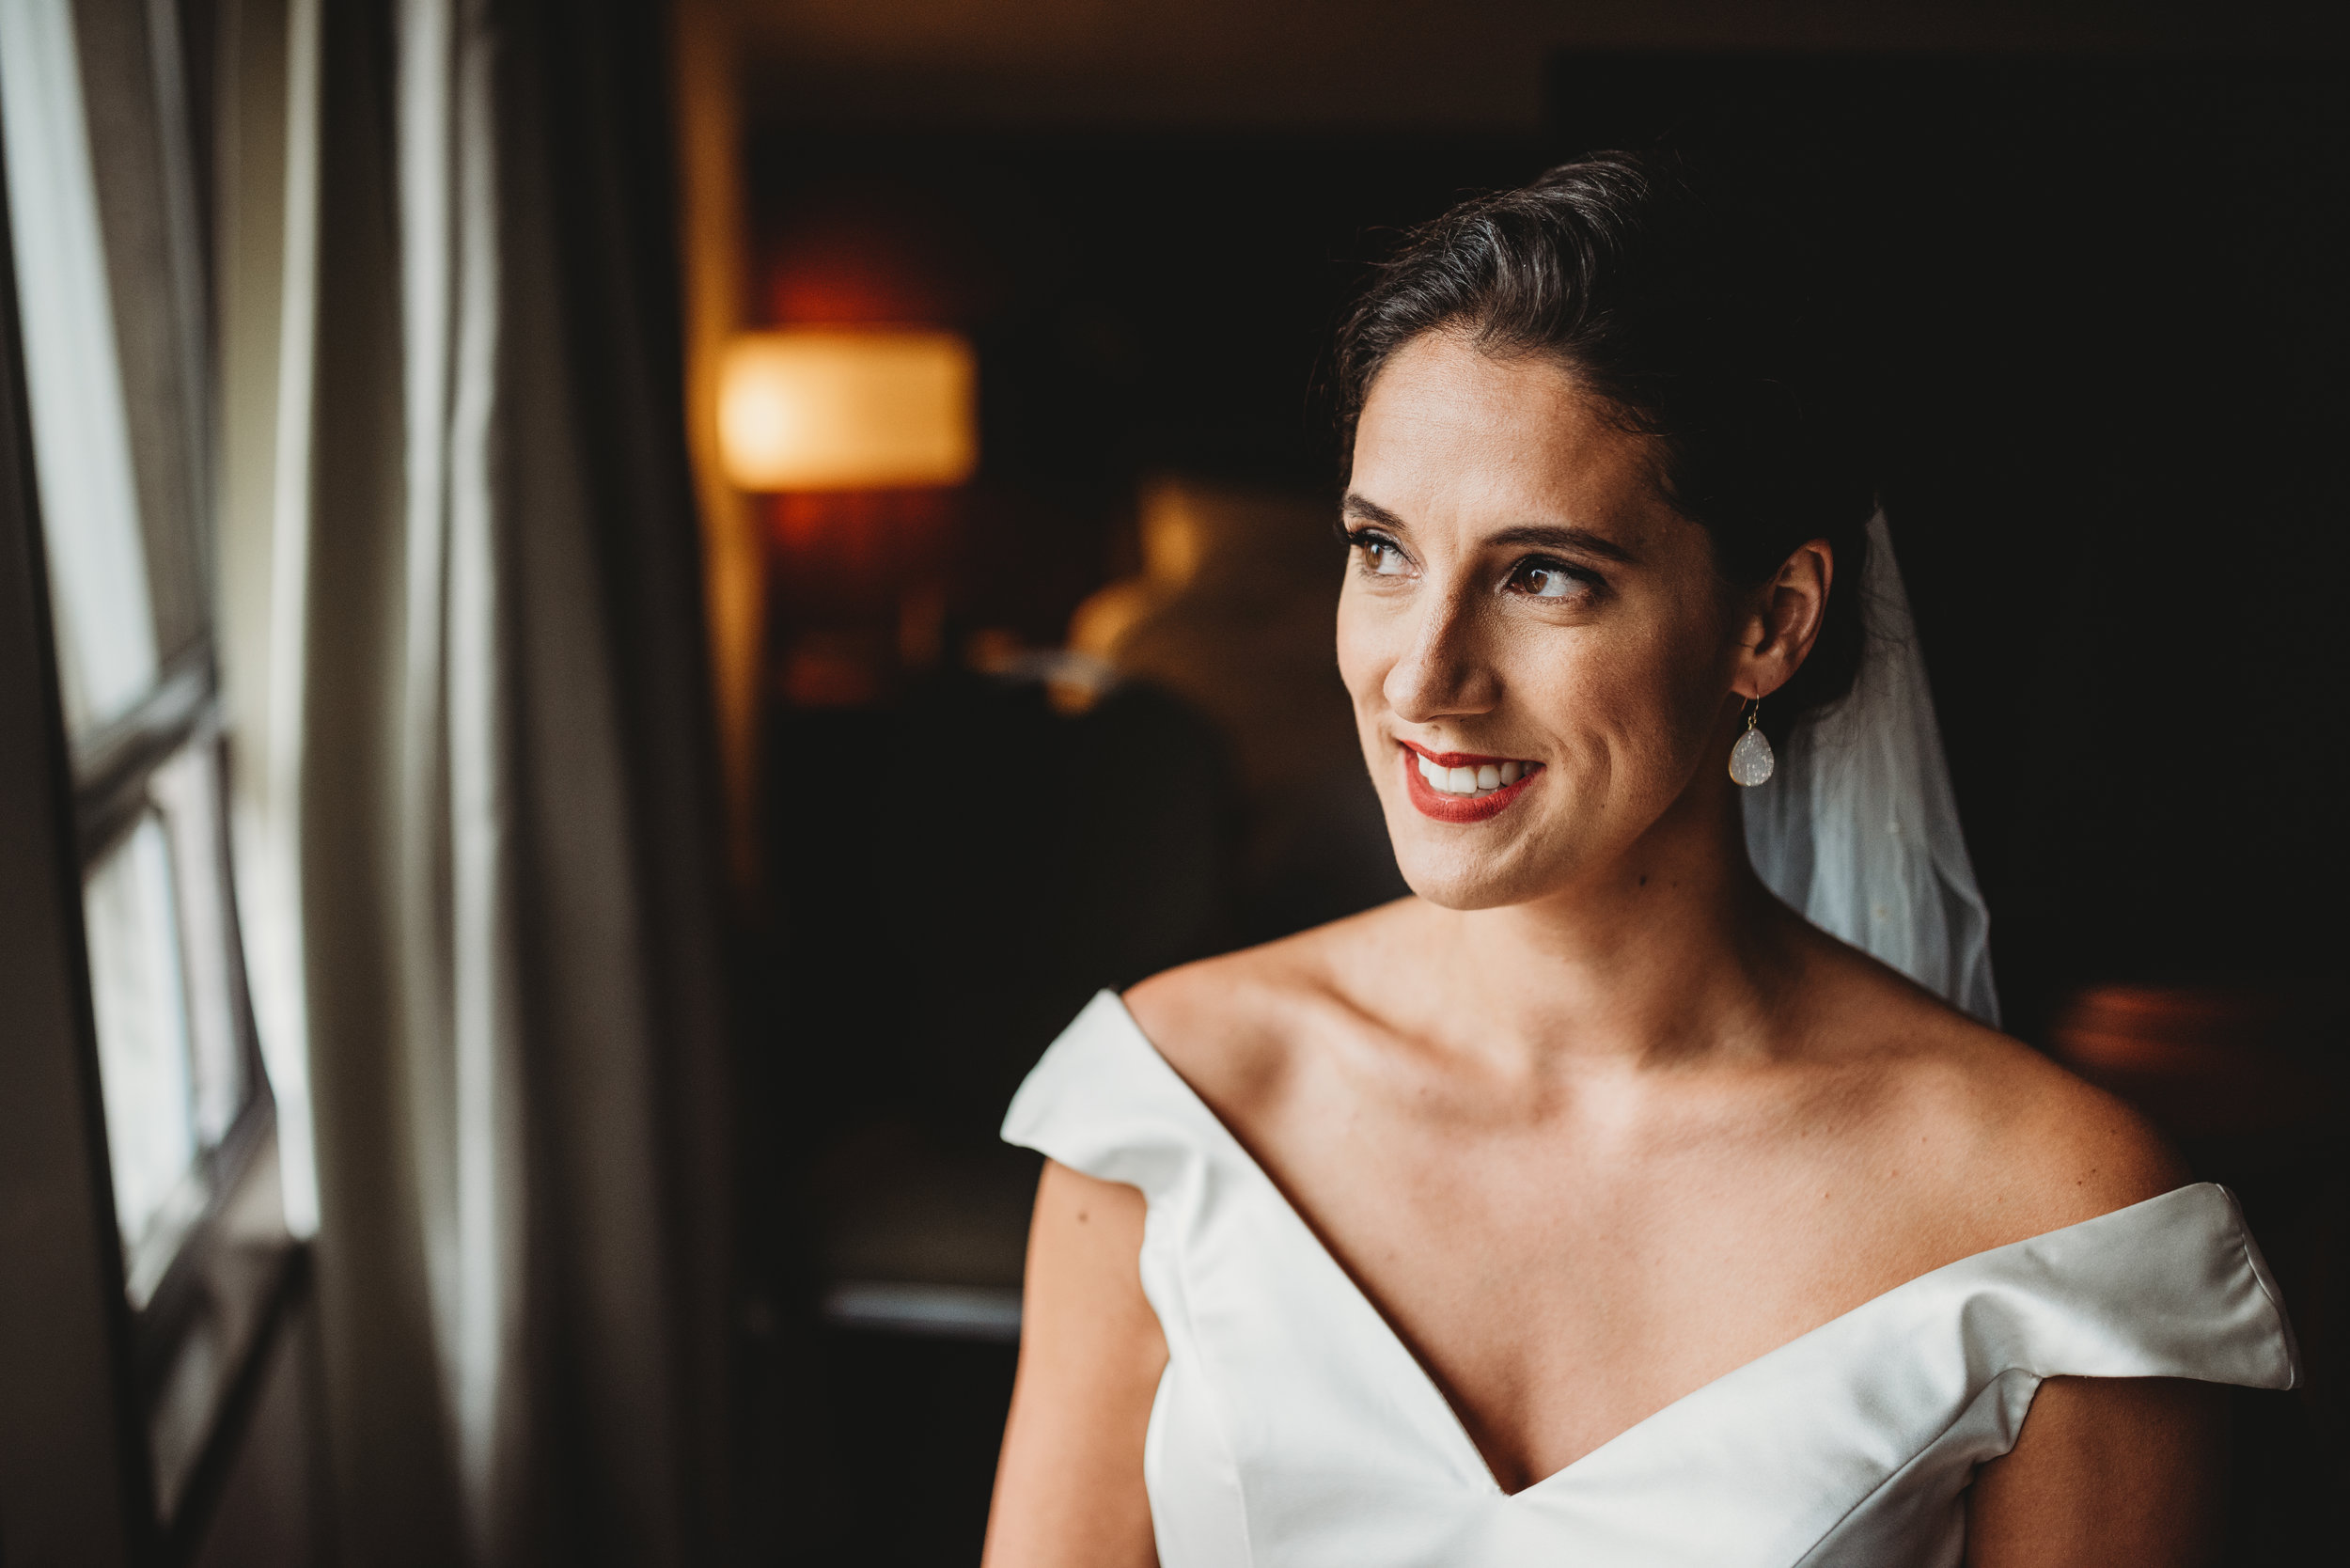 bridal-portrait-getting-ready-photos-eglington-grand-wedding-by-willow-birch-photo-toronto-documentary-wedding-photographers.jpg